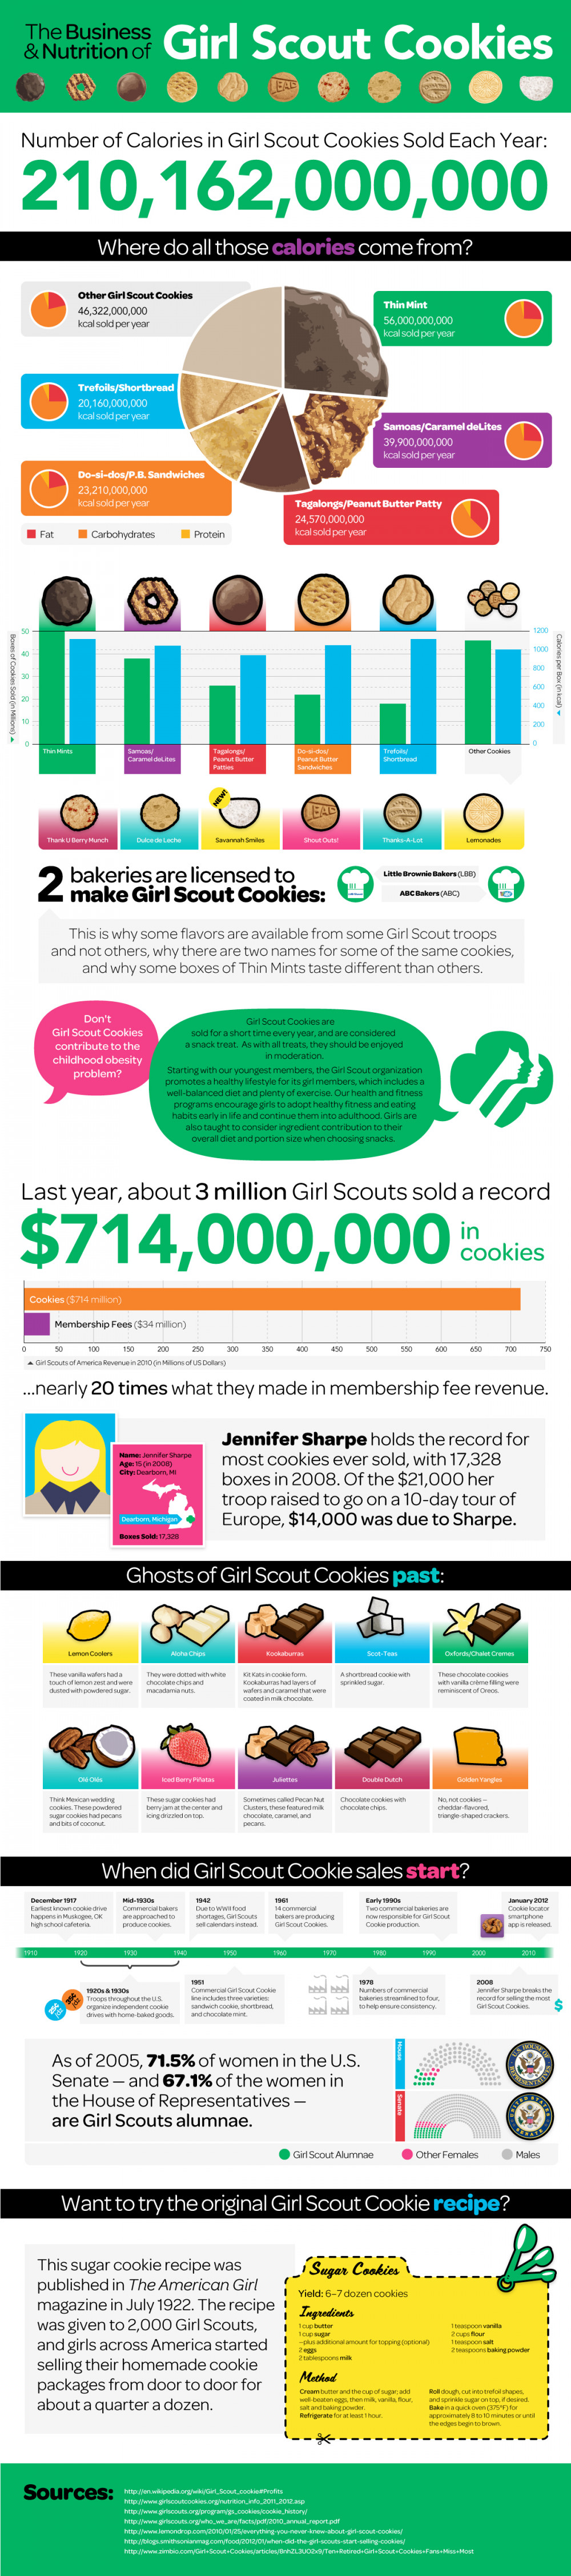 The Business of Girl Scout Cookies